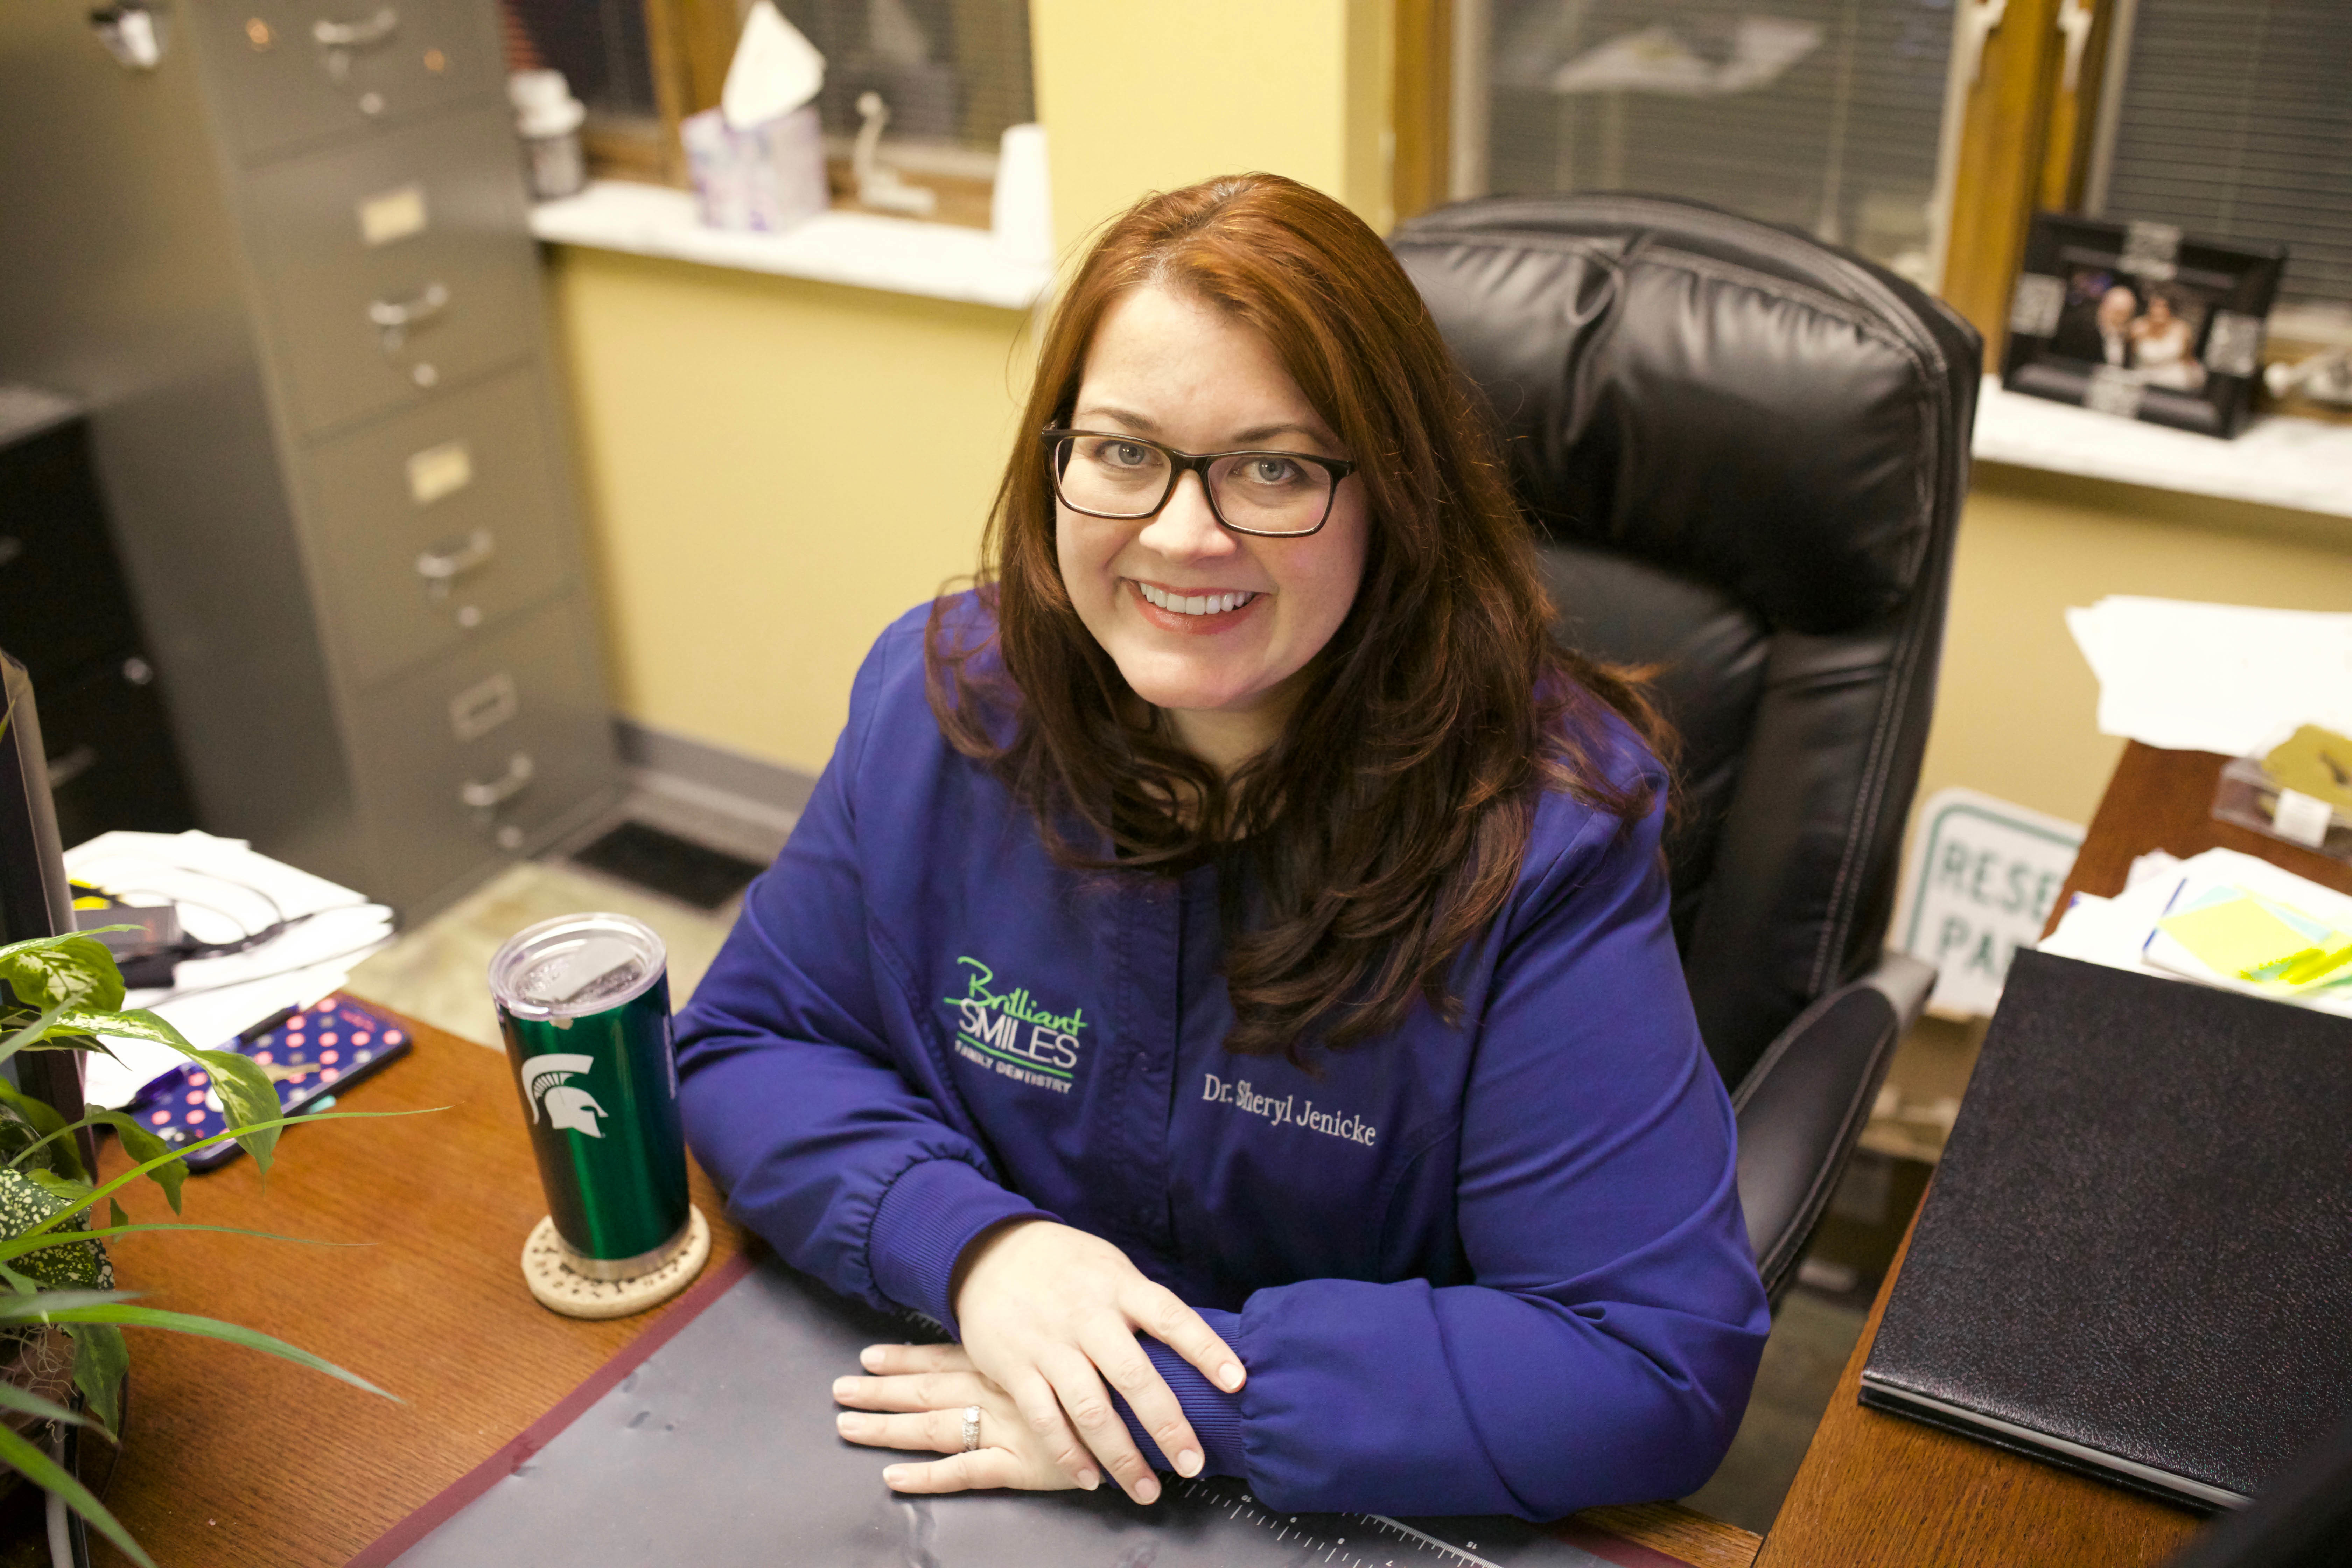 Dr. Jenicke in her office (yes she is a Spartan).